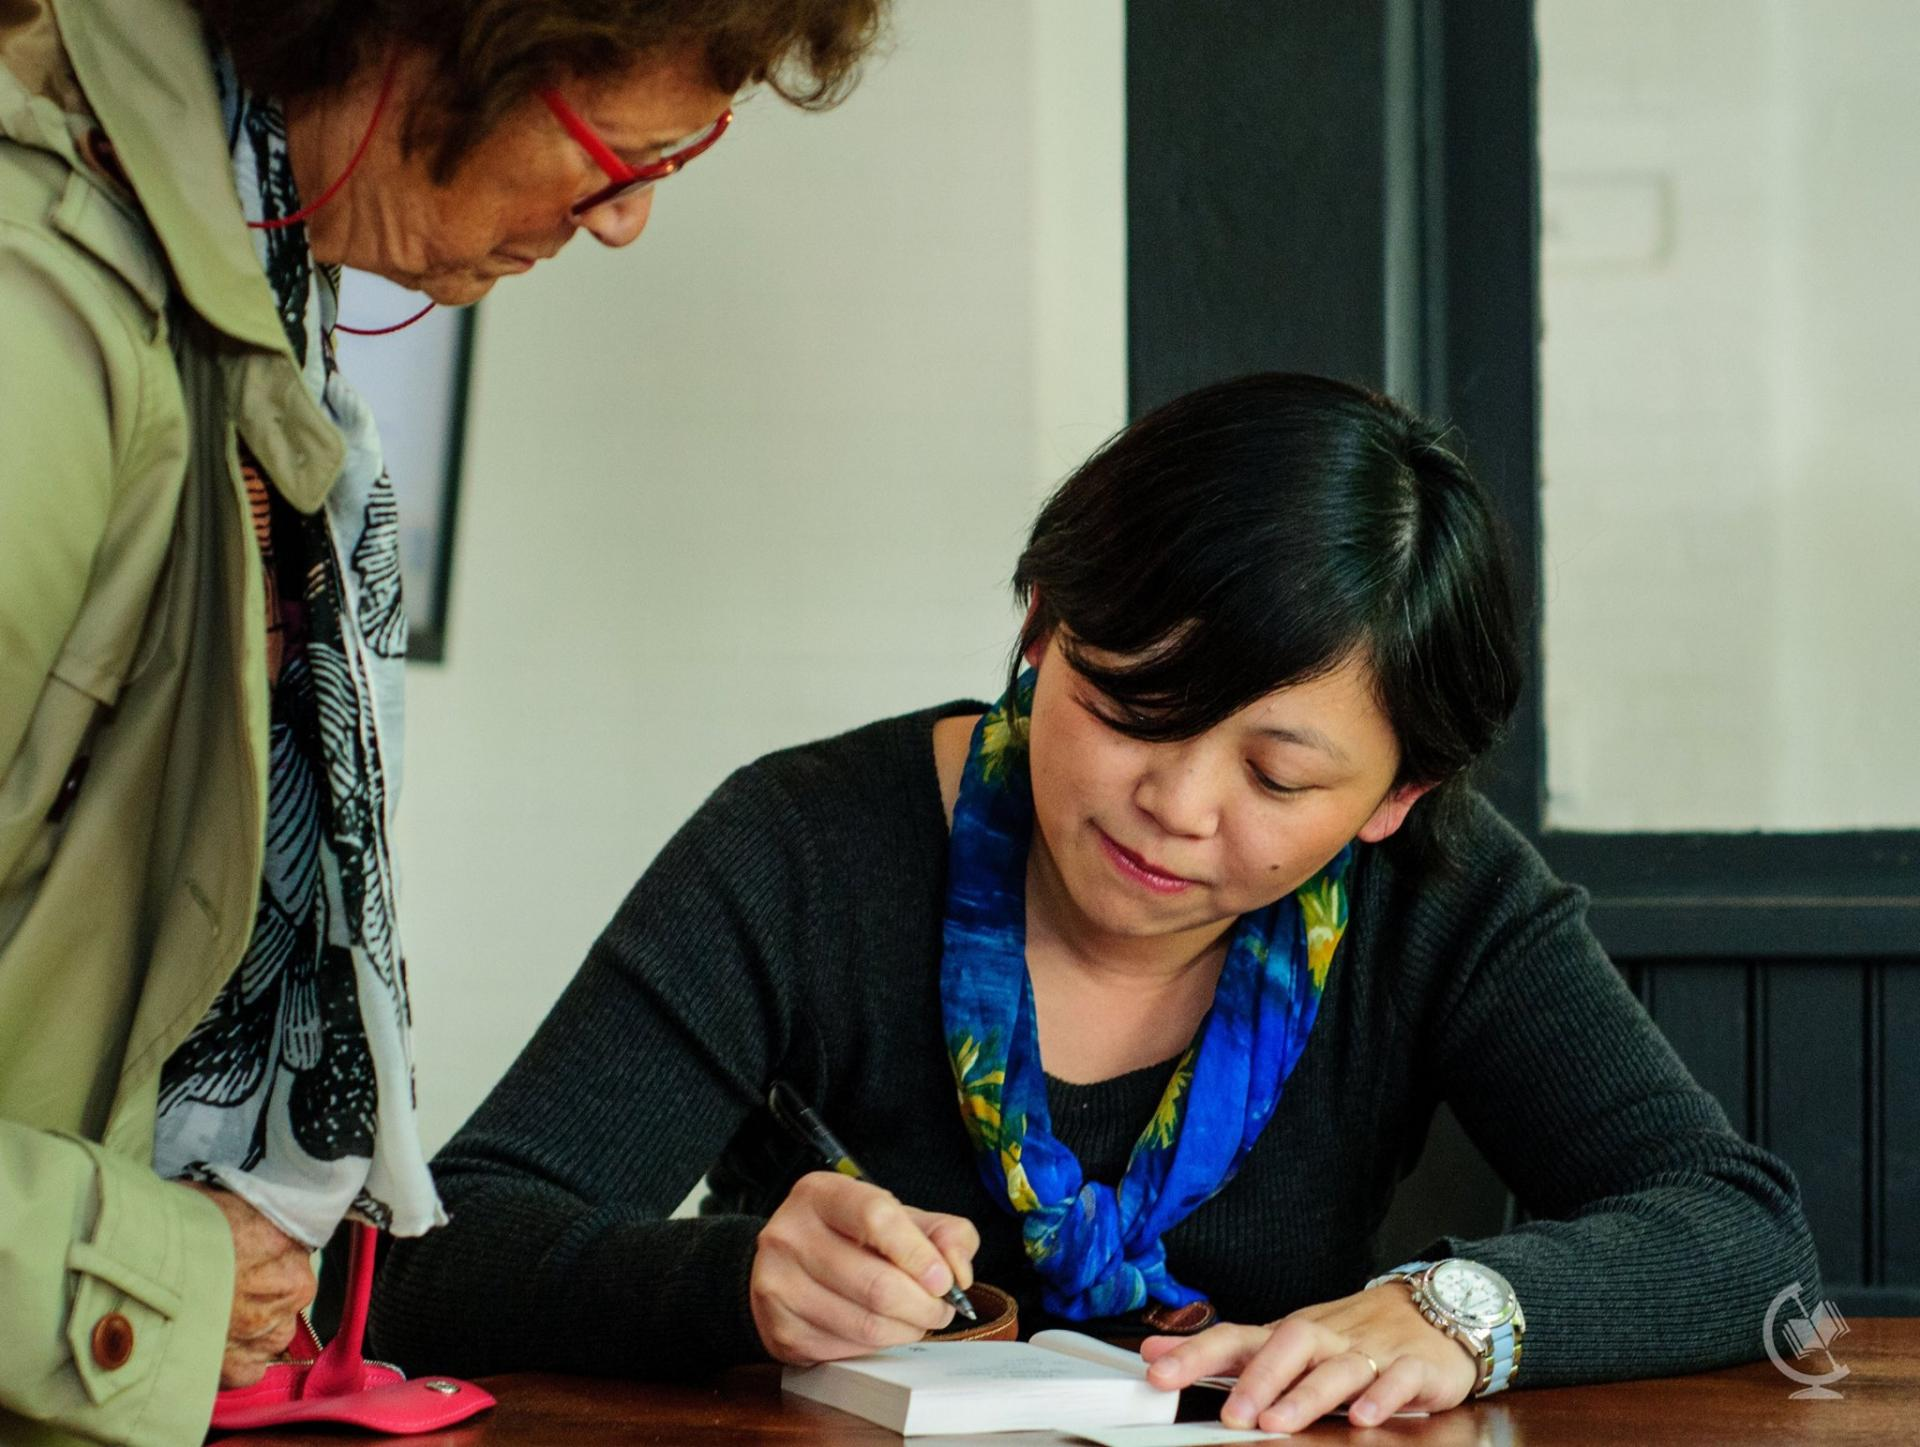 Yiyun Li signs autographs